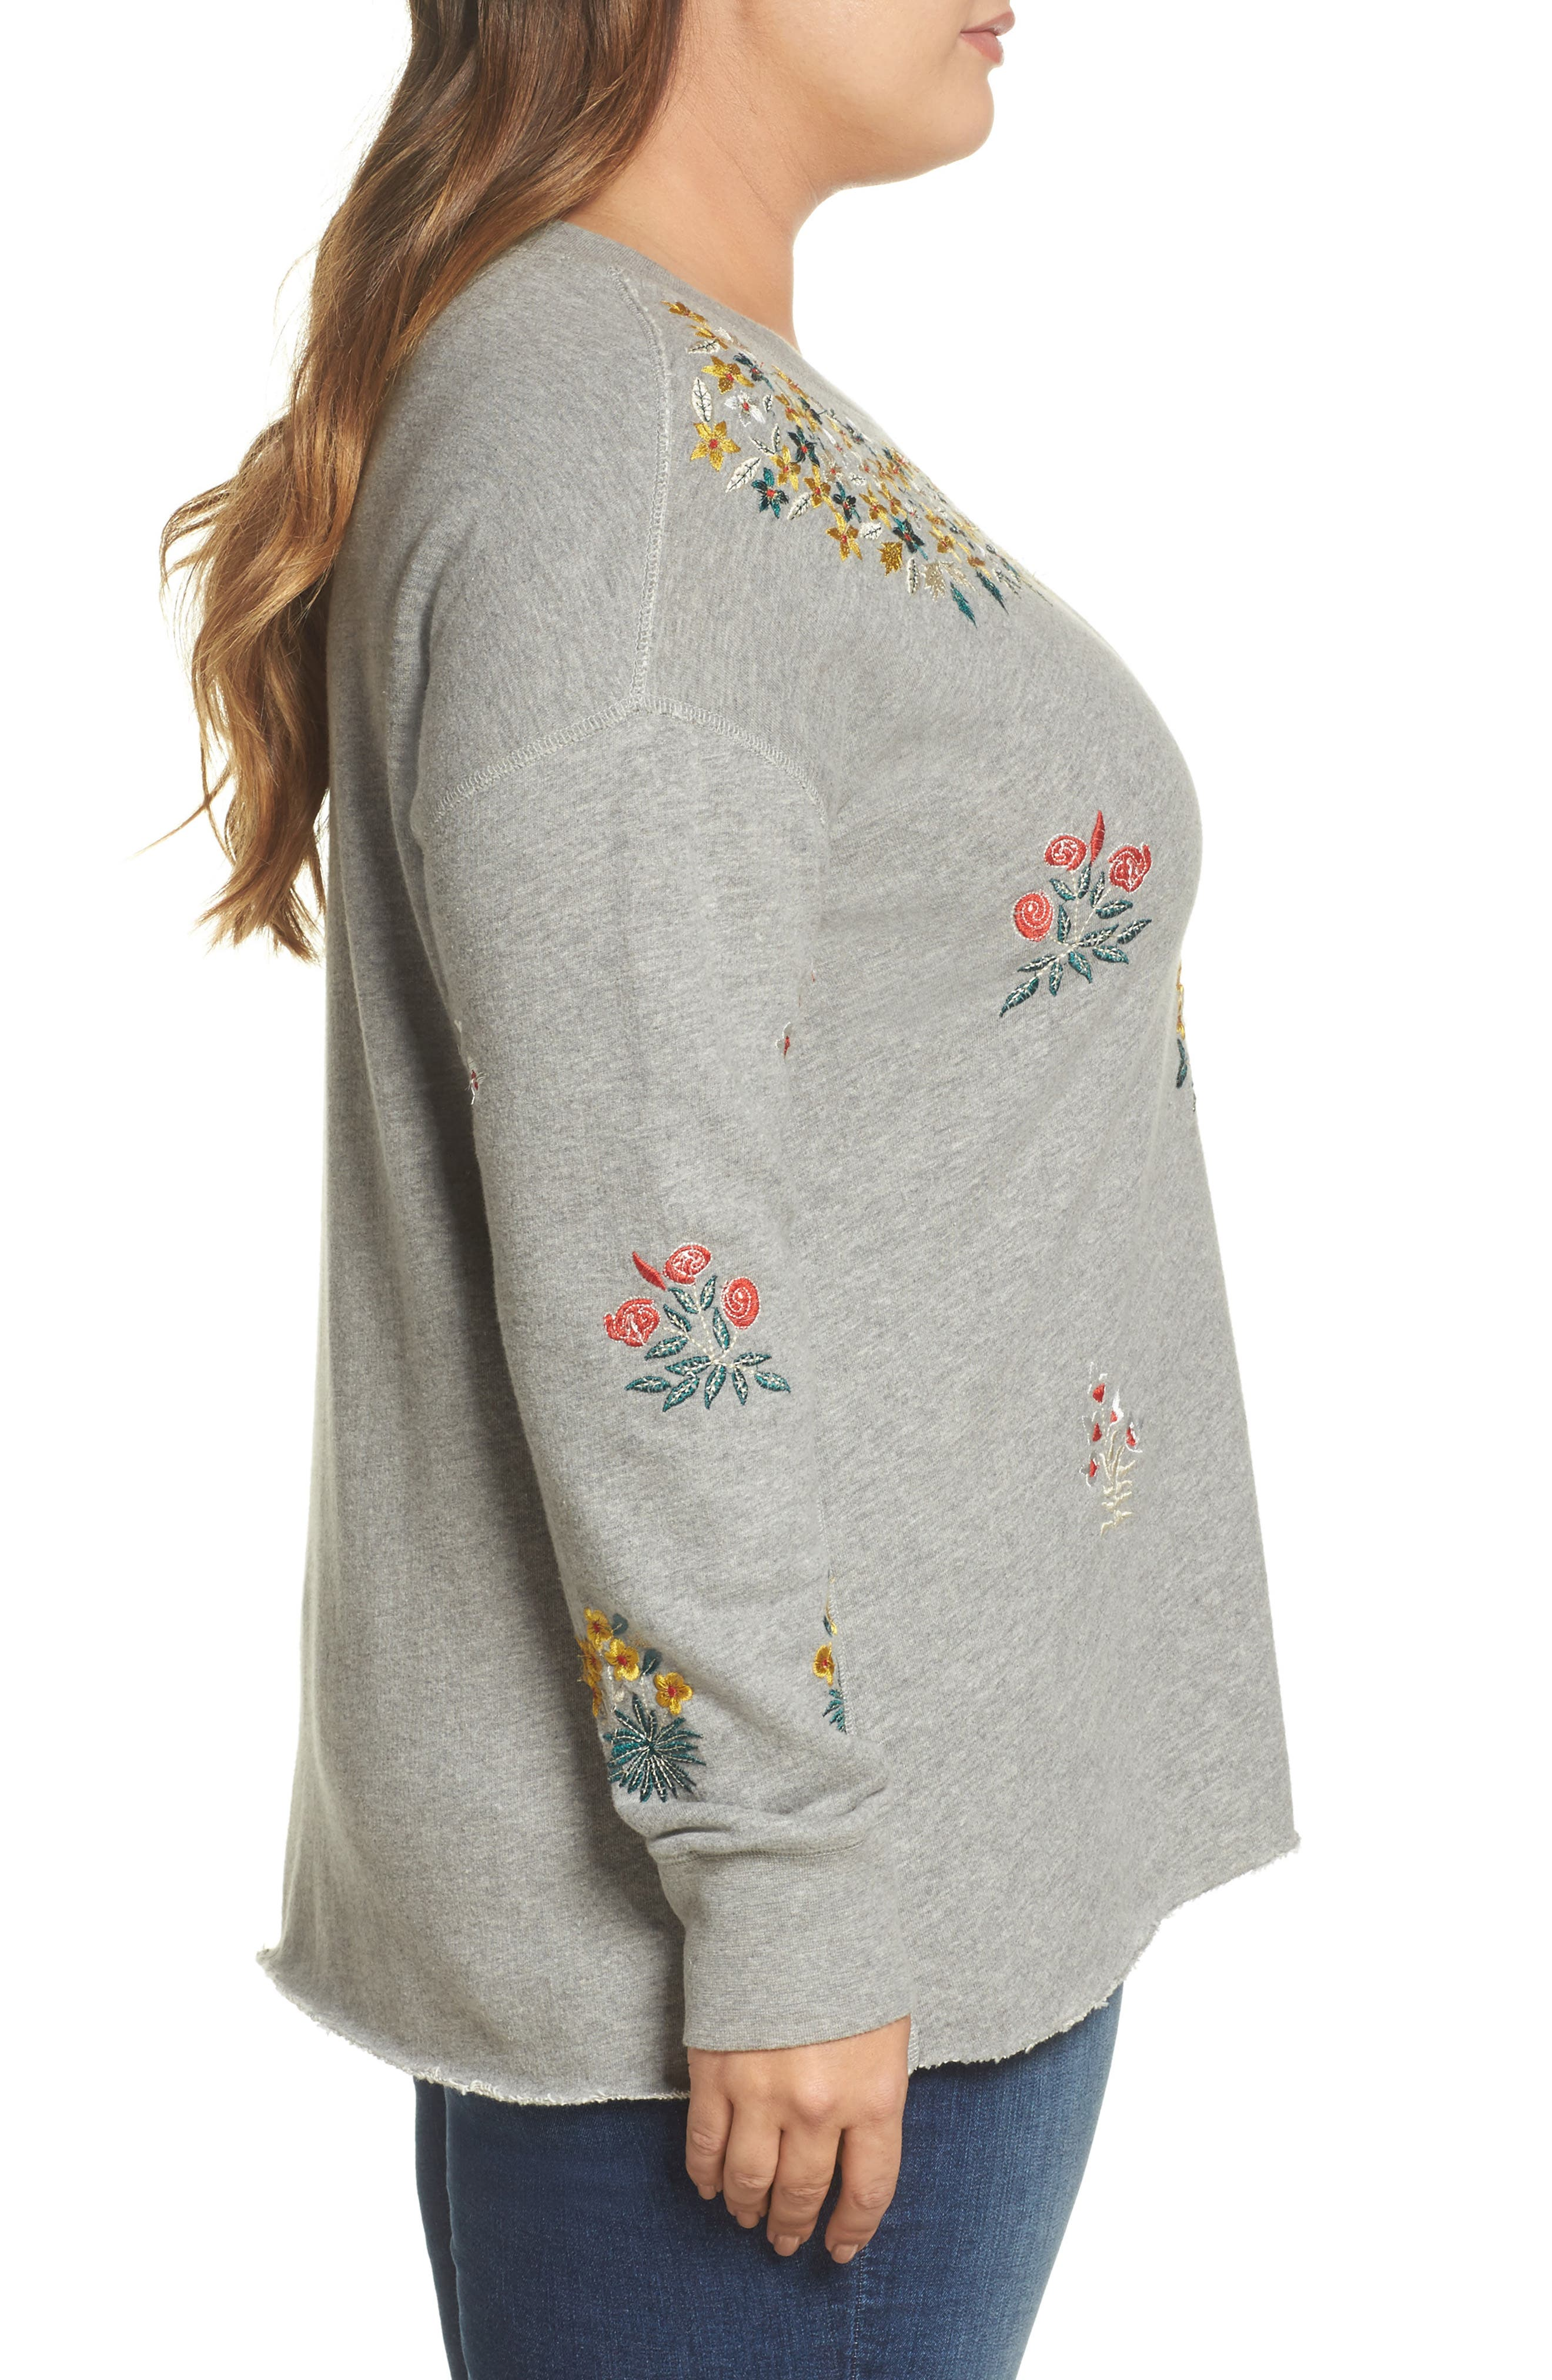 Embroidered Sweatshirt,                             Alternate thumbnail 3, color,                             Heather Grey